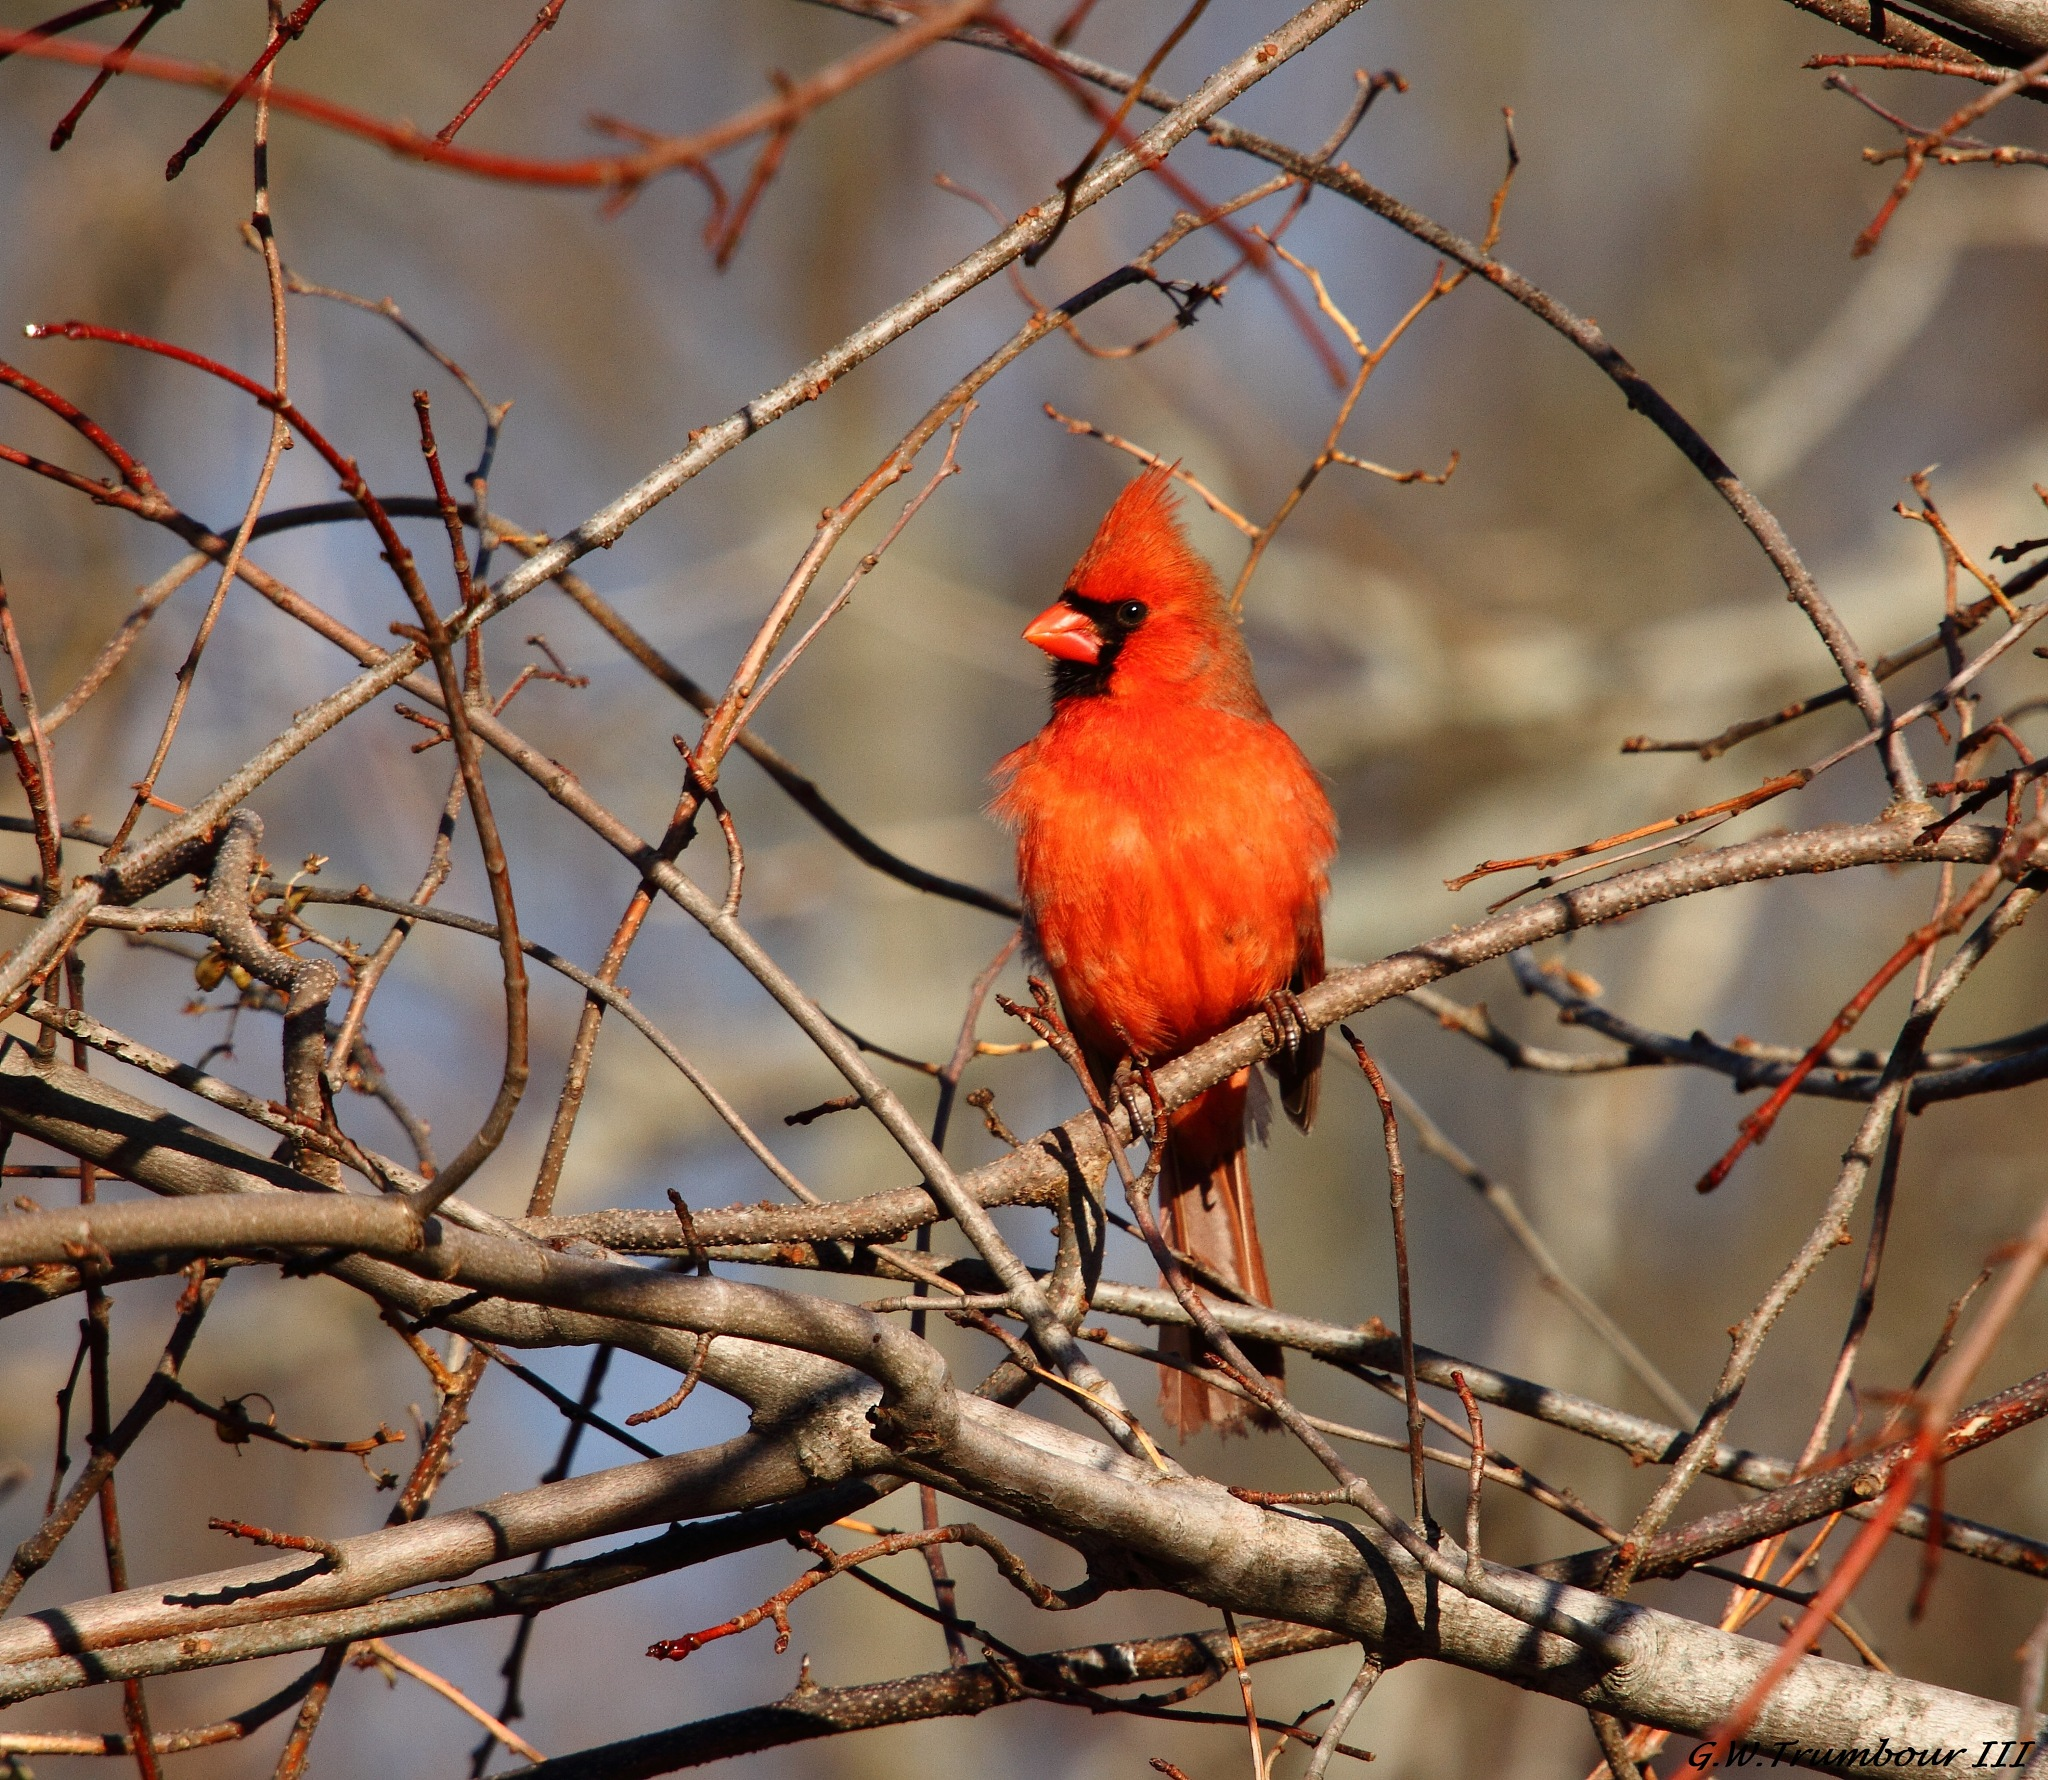 Sunny spot Cardinal by George W. Trumbour iii